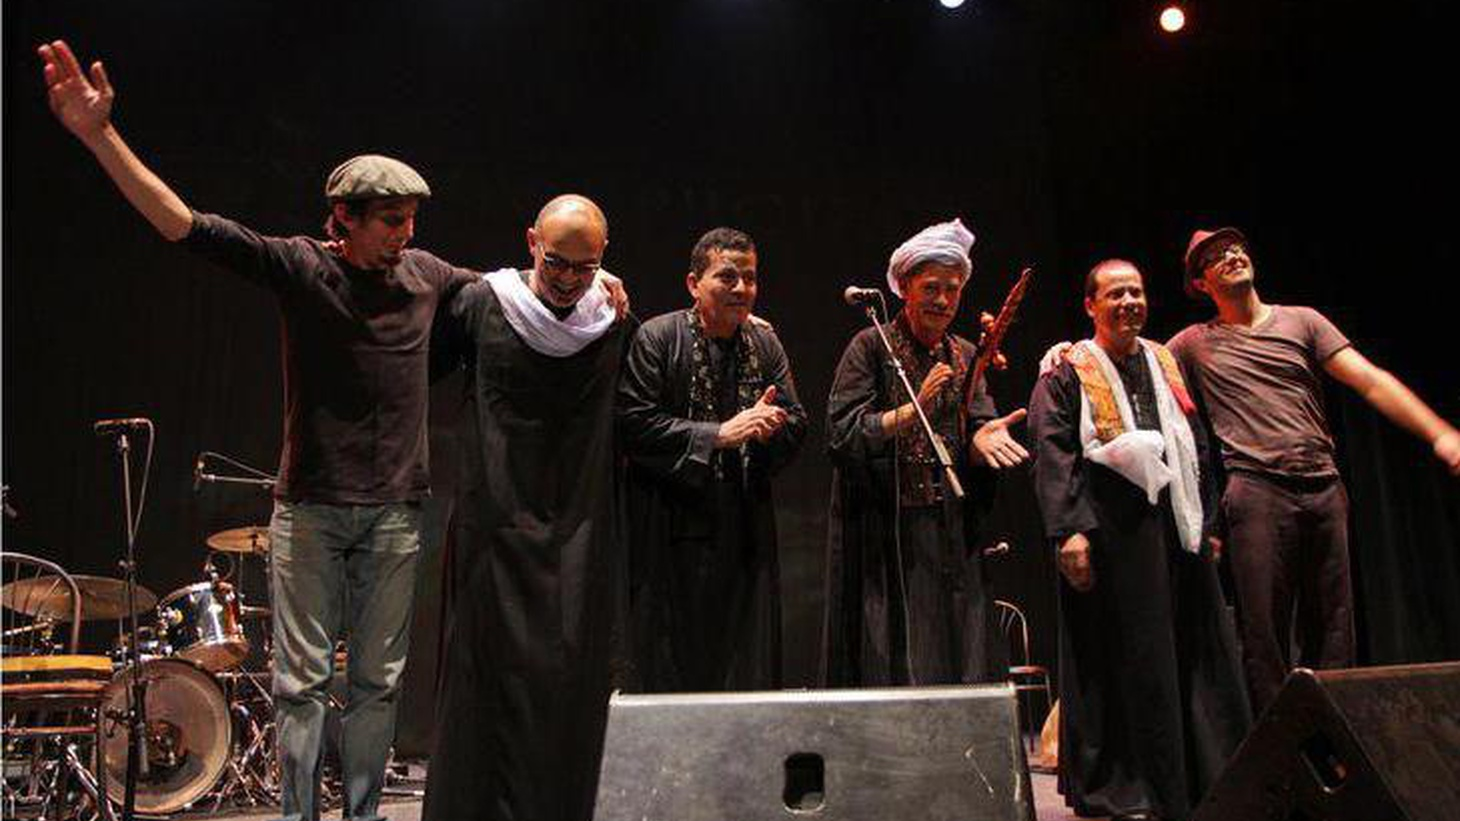 Egyptian Project is a collaborative effort fusing traditional sounds and marrying them with electronic ambiance.